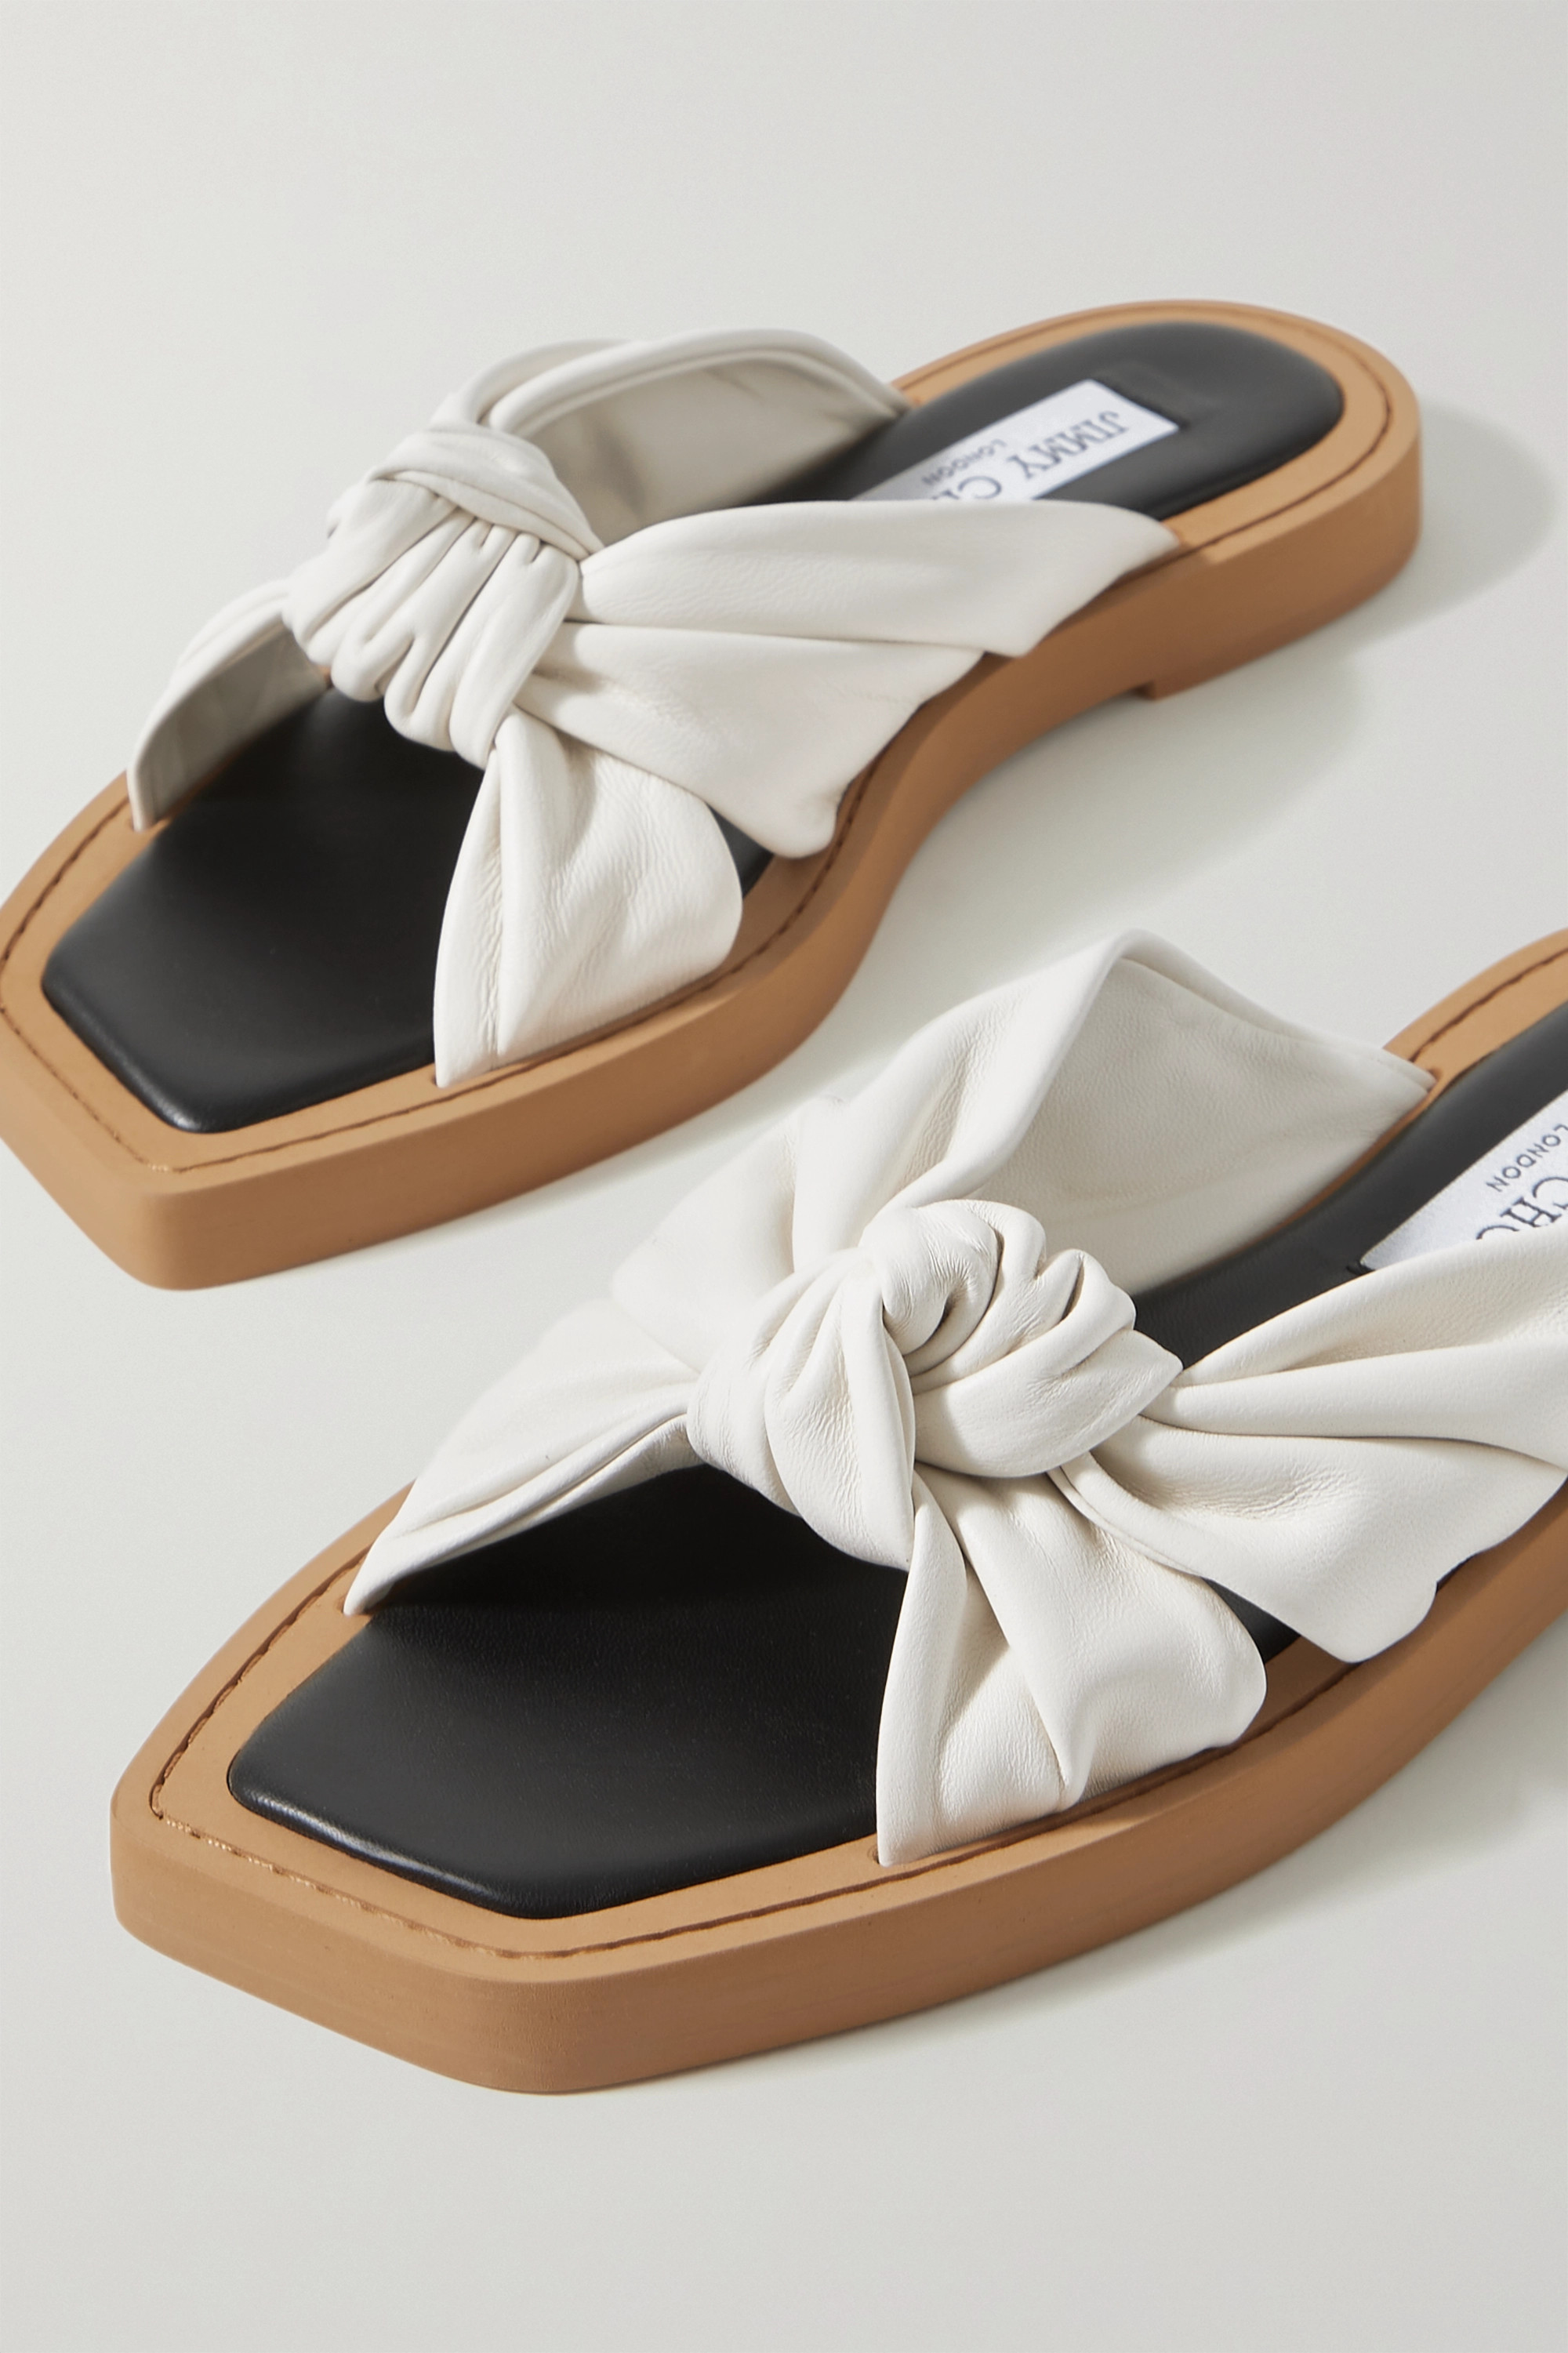 Jimmy Choo Tropica knotted leather sandals